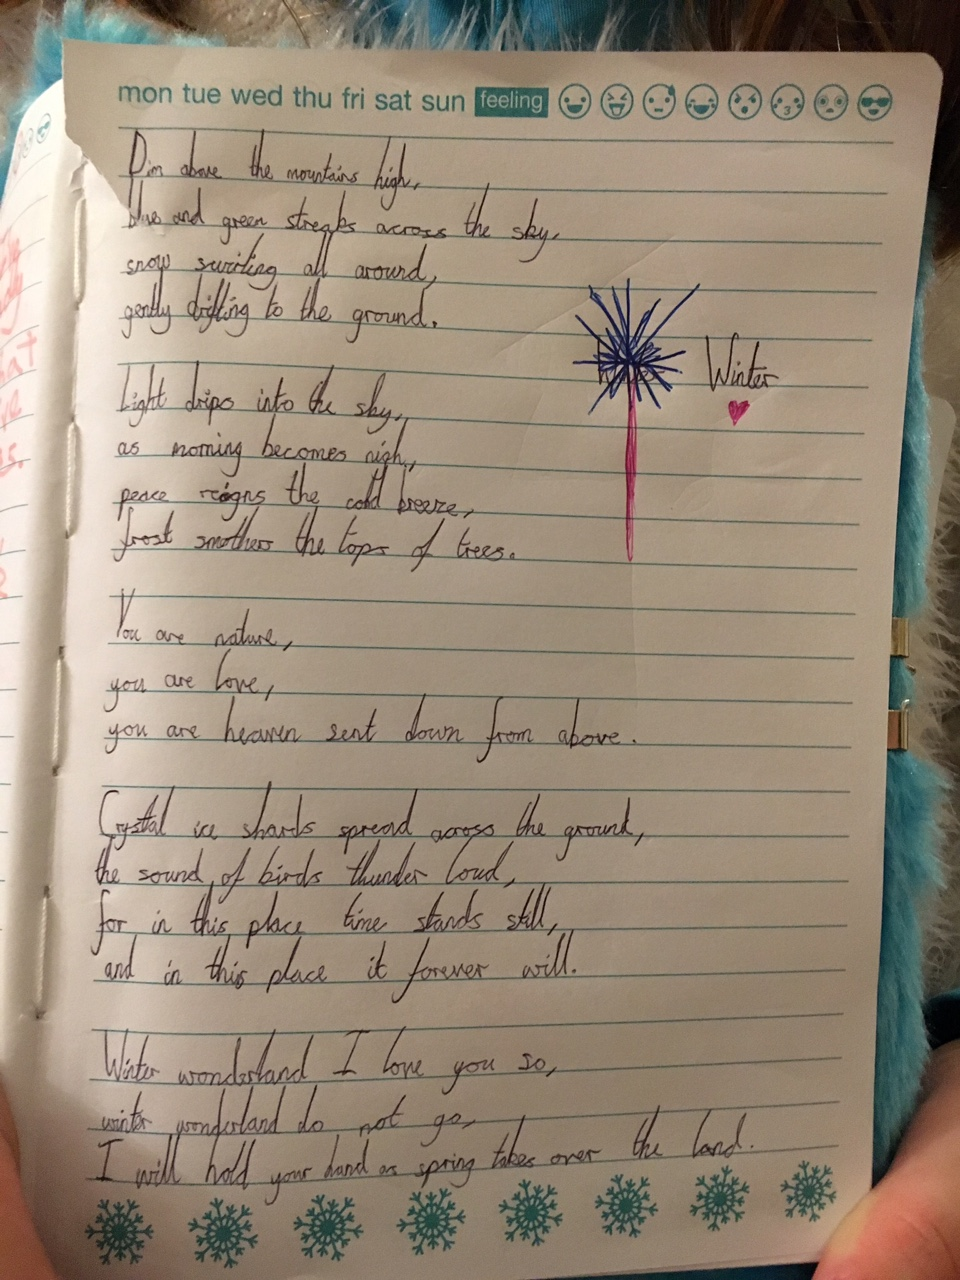 A poem from a pupil that visited Derwent Hill